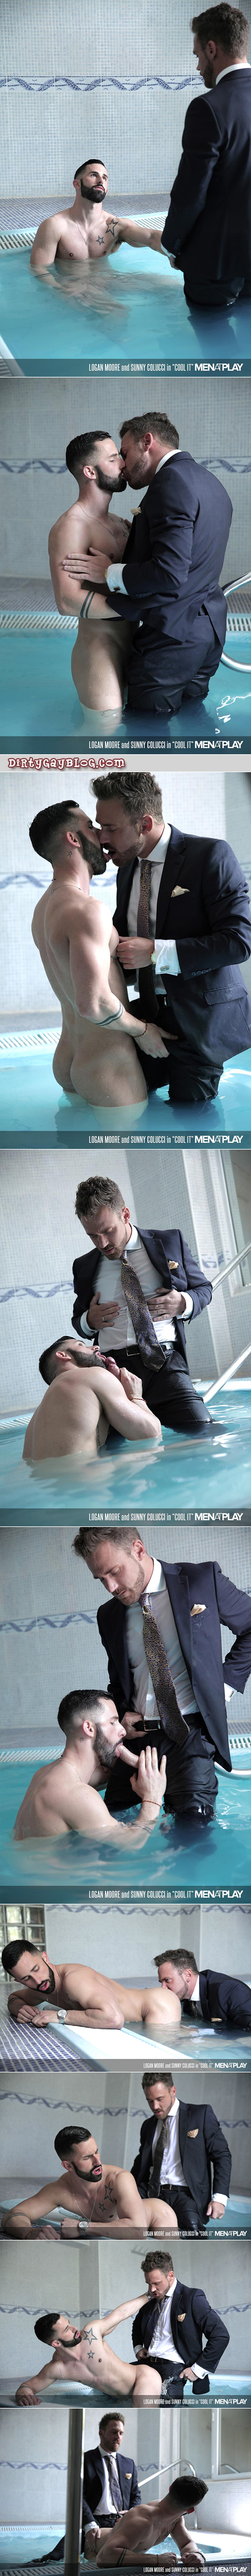 Bearded stud in a business suit climbs into a Jacuzzi fully clothed so he can fuck a hunk in there.